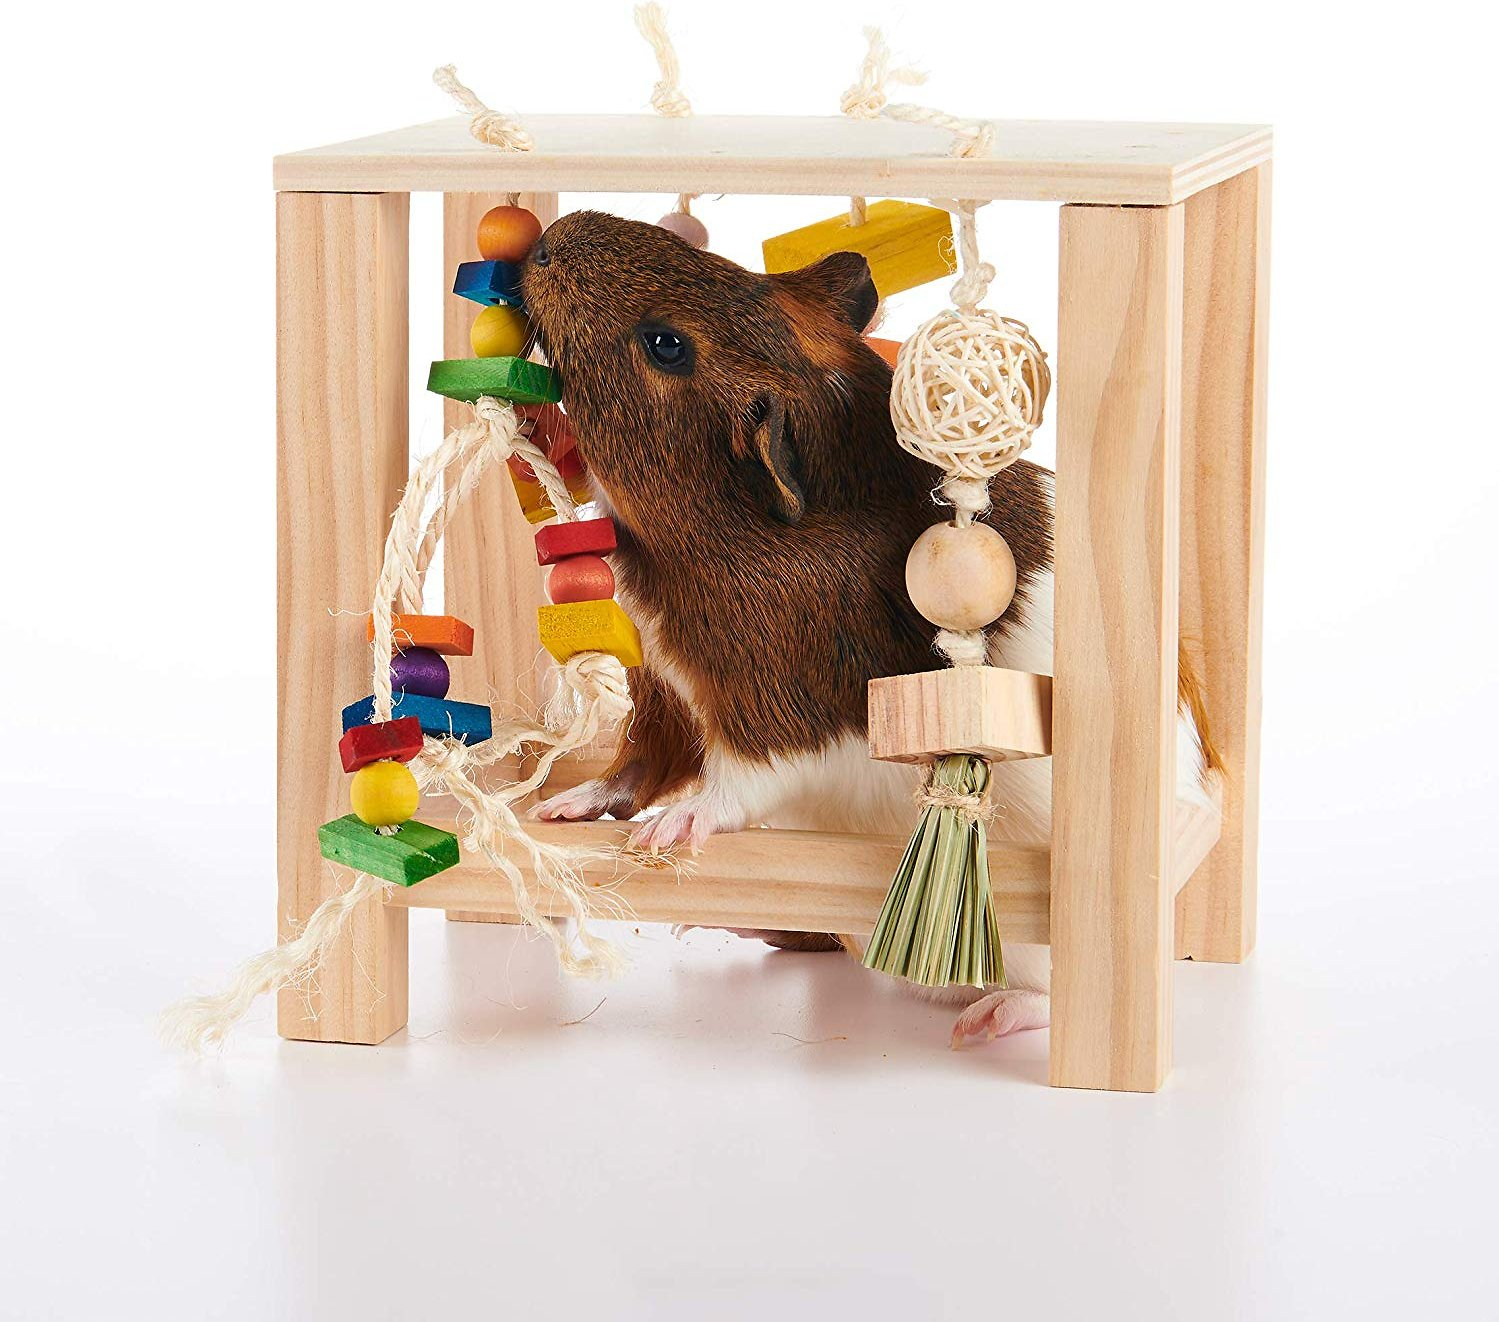 OXBOW Play Table Small Animal Toy - Chewy.com